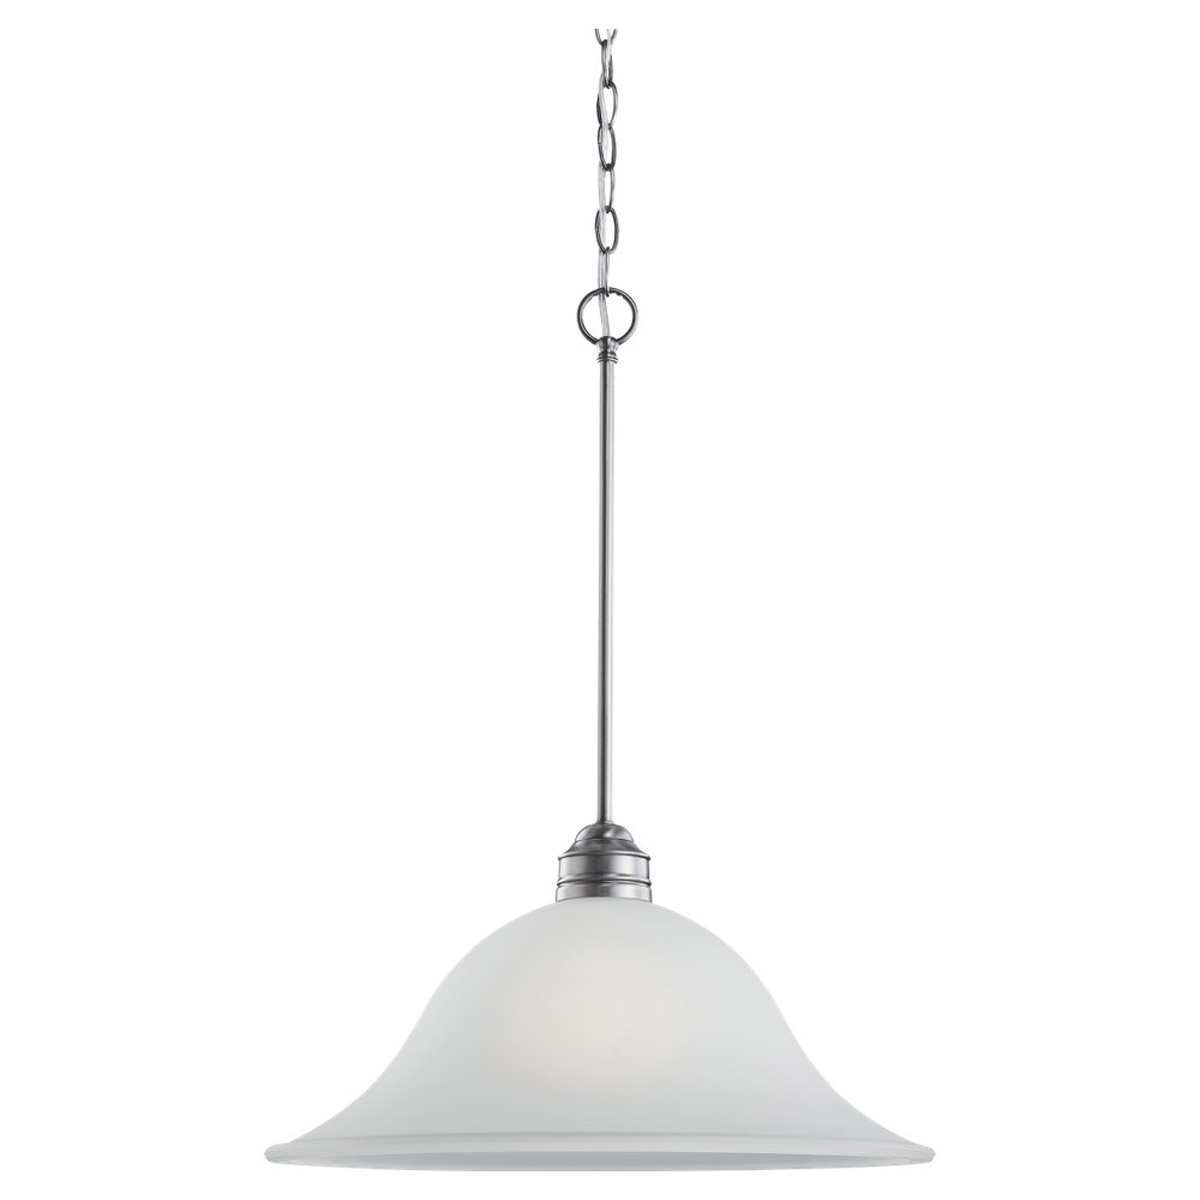 Sea Gull 65850BLE-965 Gladstone 1 Light 18 inch Antique Brushed Nickel Pendant Ceiling Light in Satin Etched Glass, Fluorescent photo